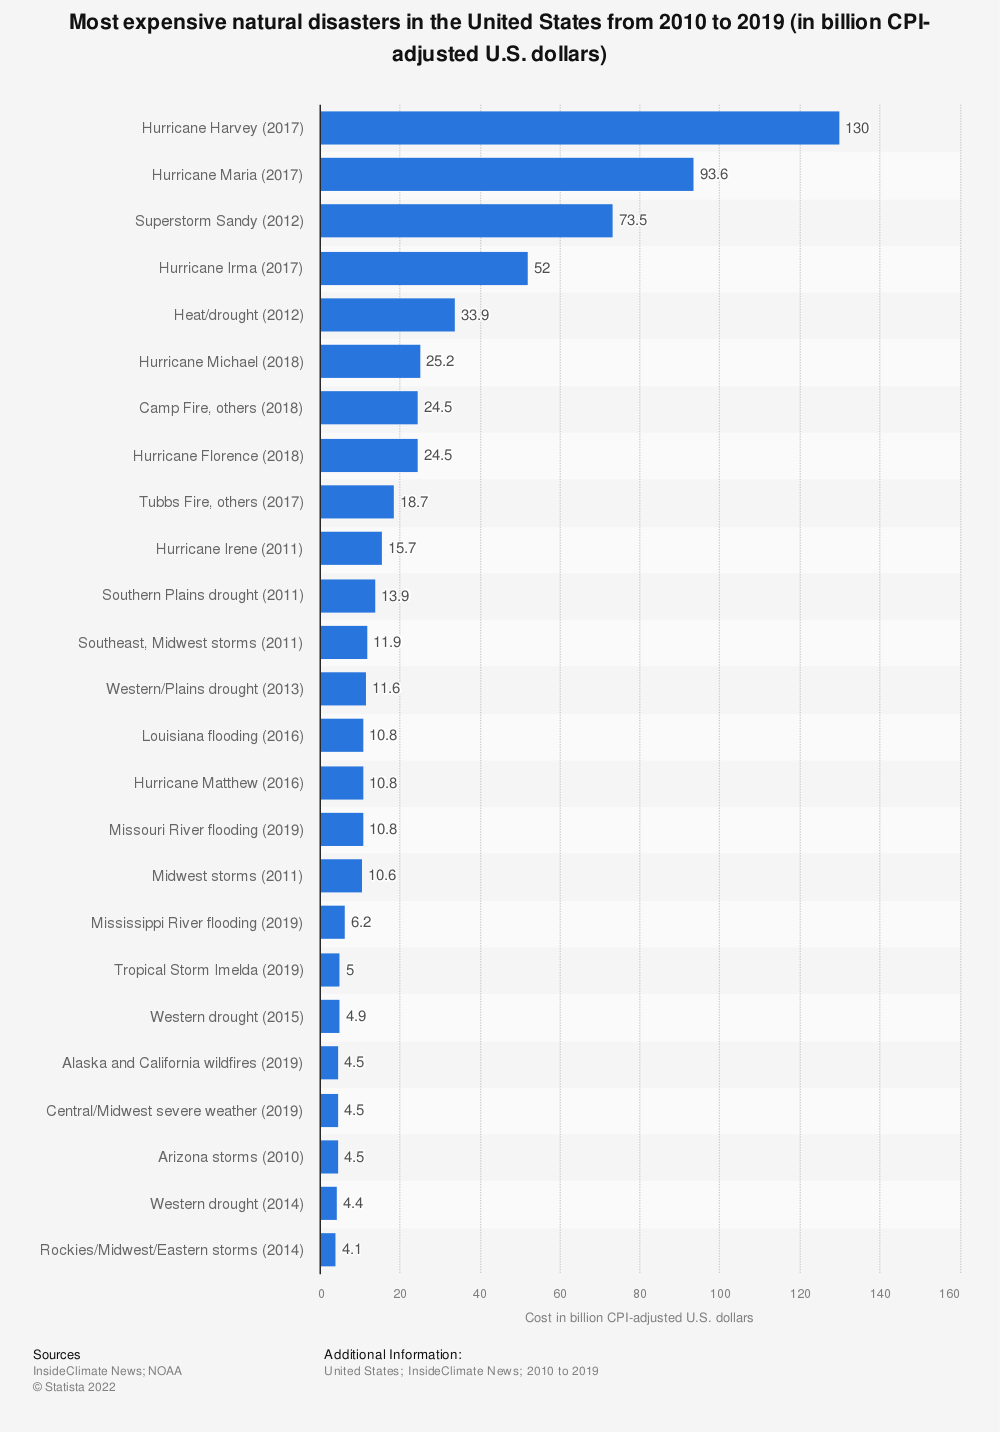 Statistic: Most expensive natural disasters in the United States from 2010 to 2019 (in billion CPI-adjusted U.S. dollars) | Statista